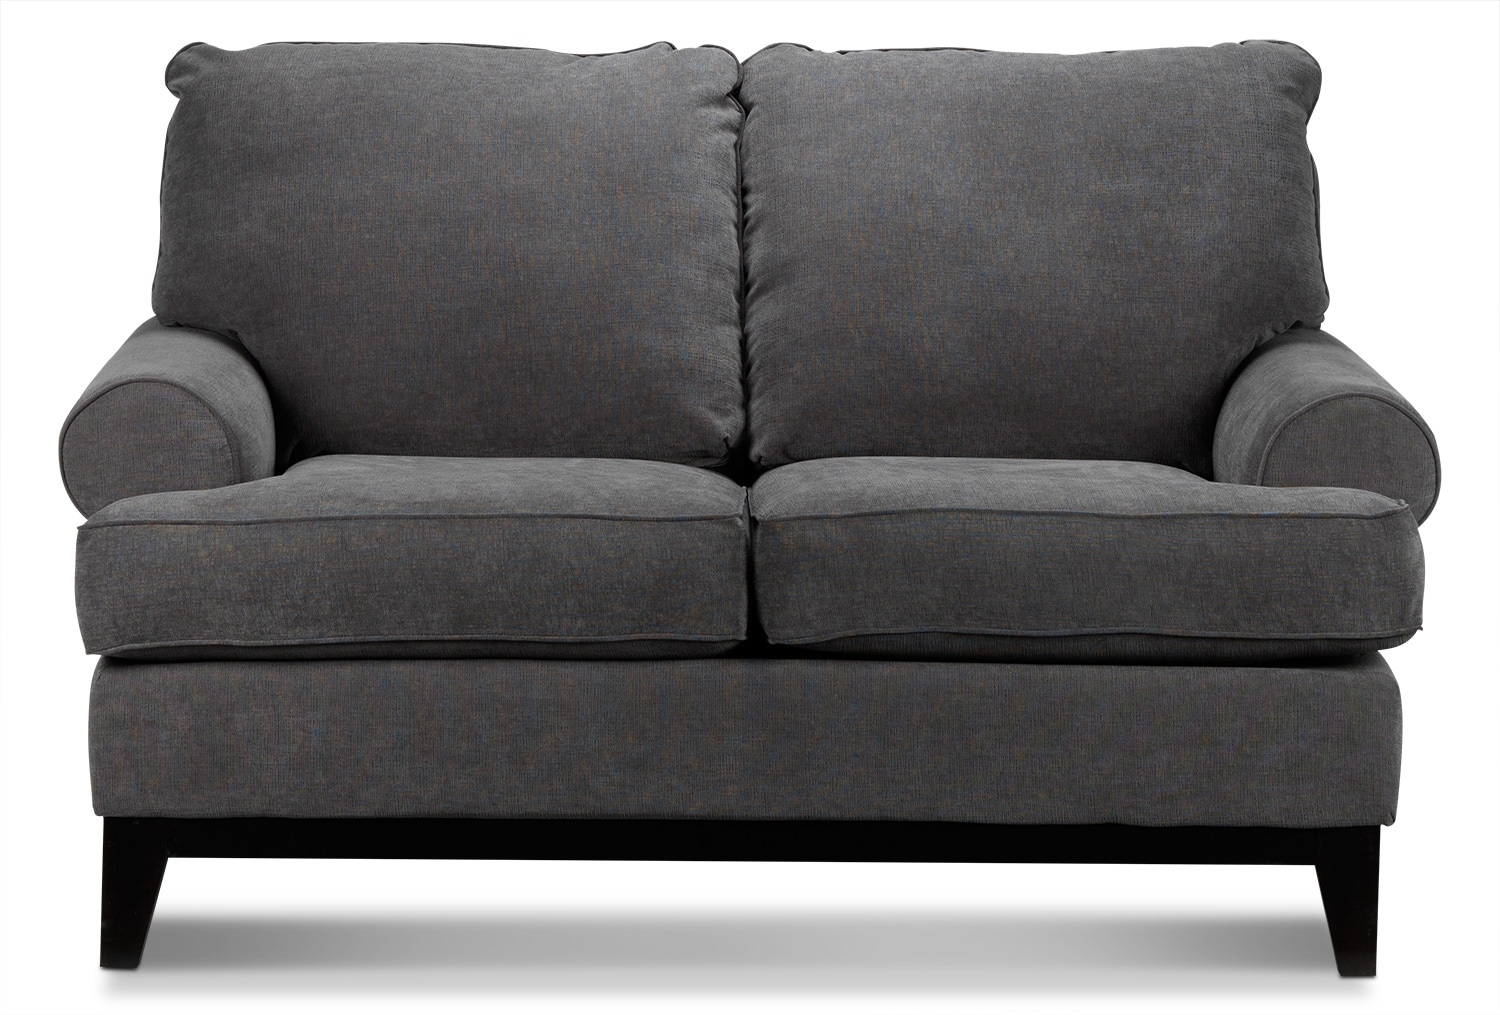 Crizia Loveseat - Dark Grey